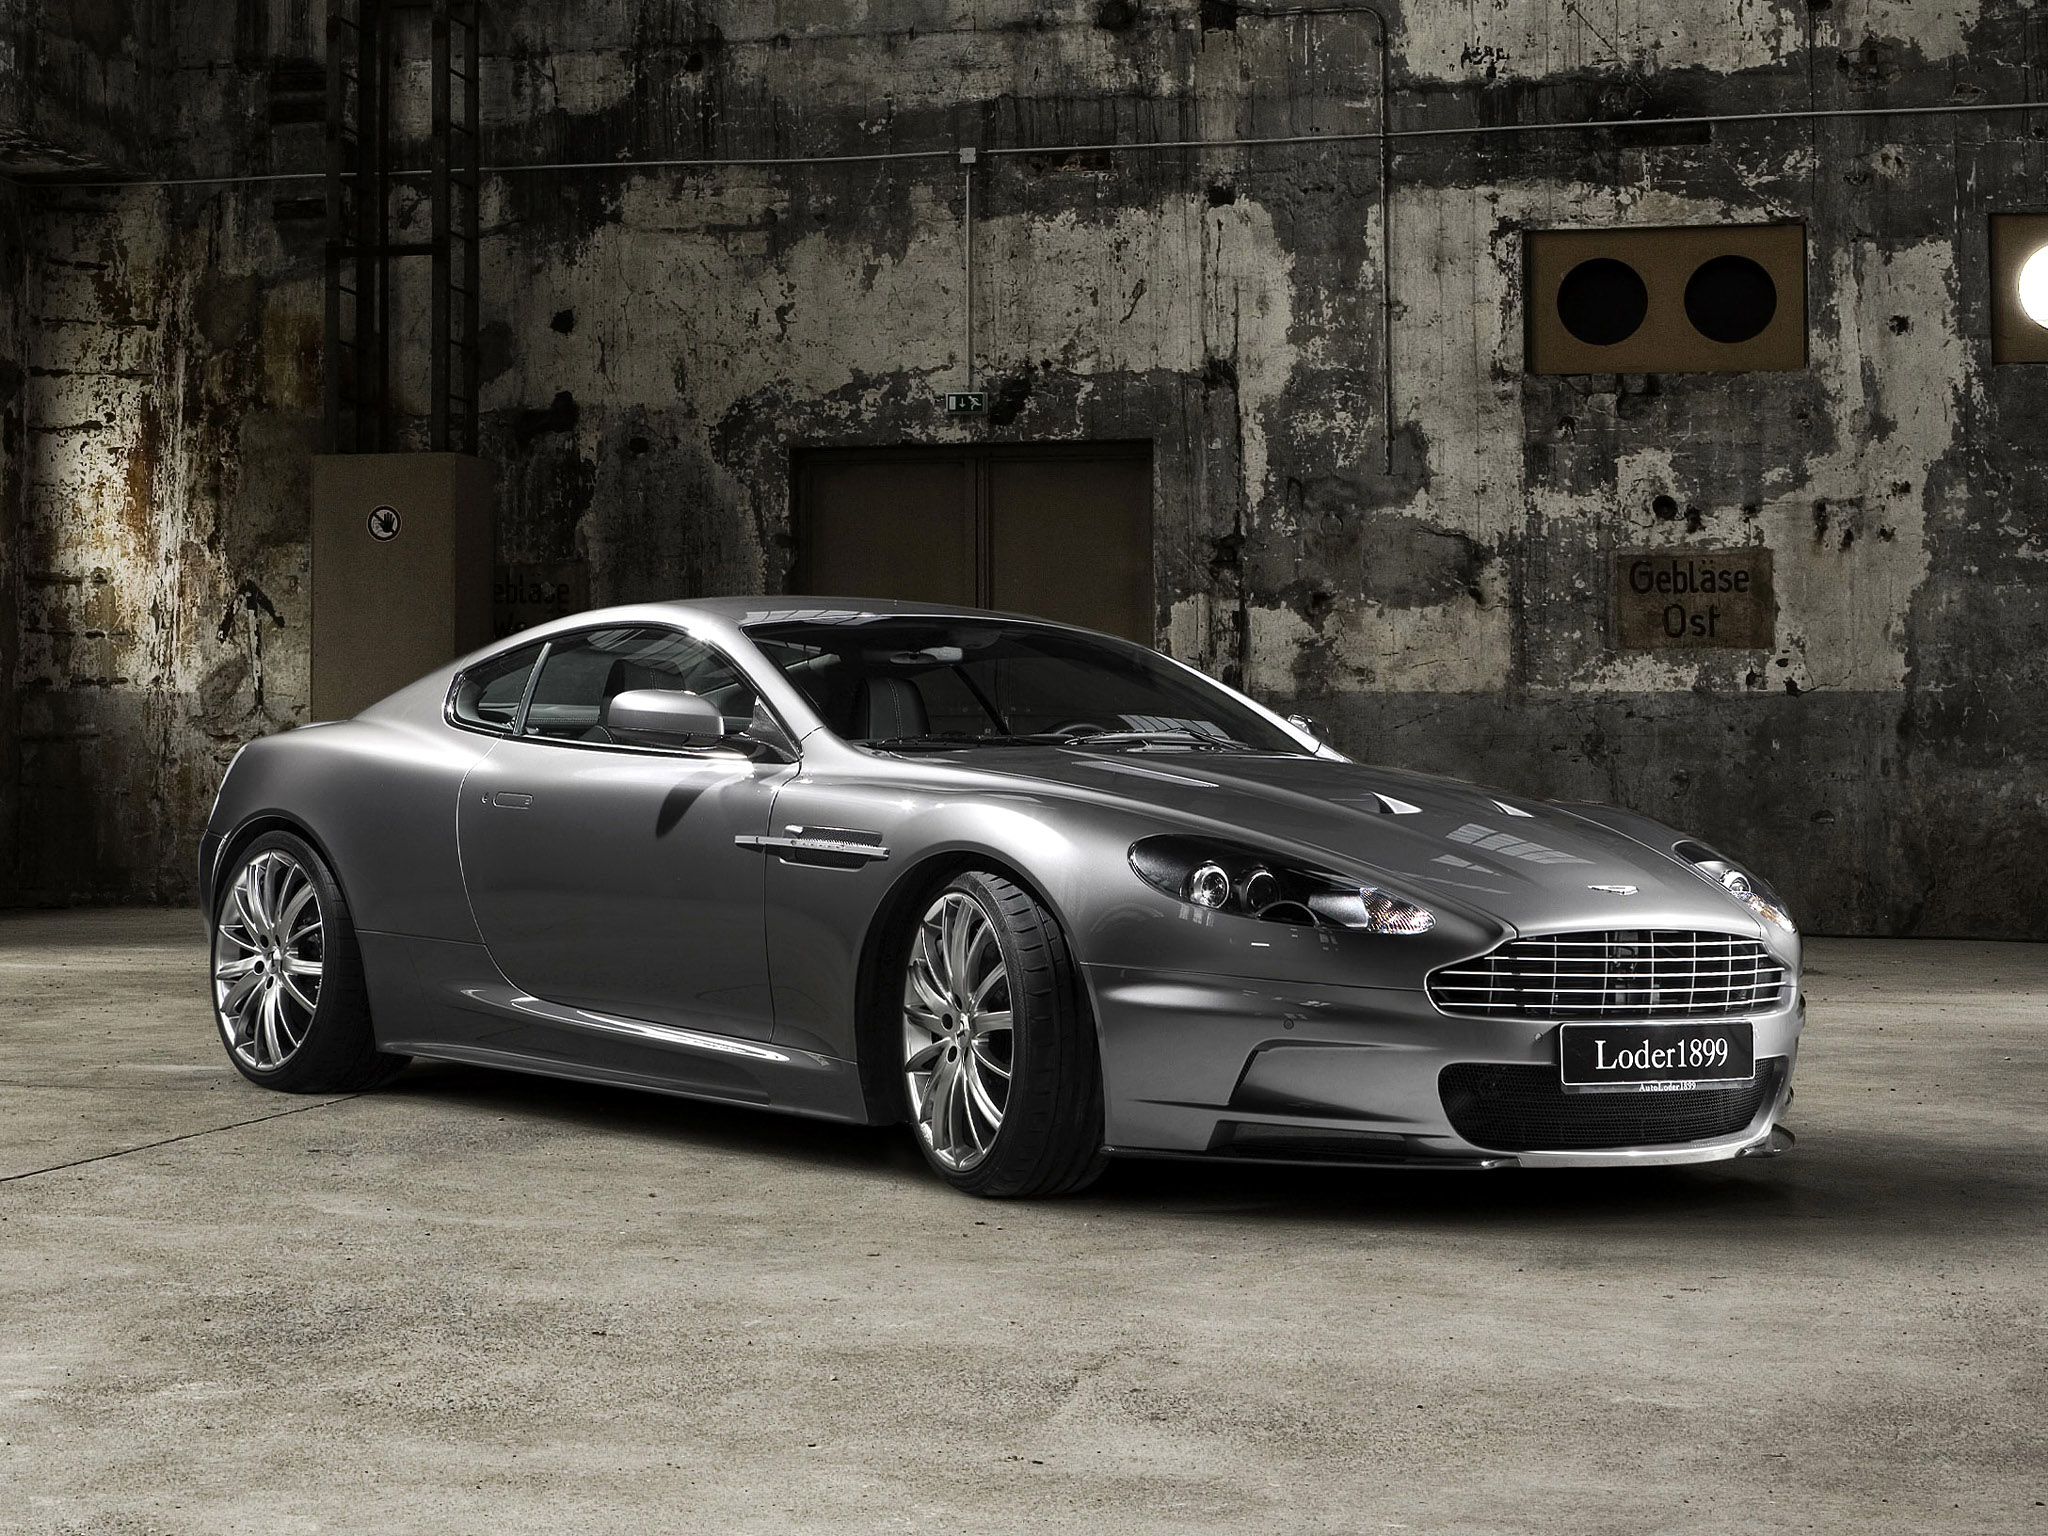 aston martin dbs wallpaper #4